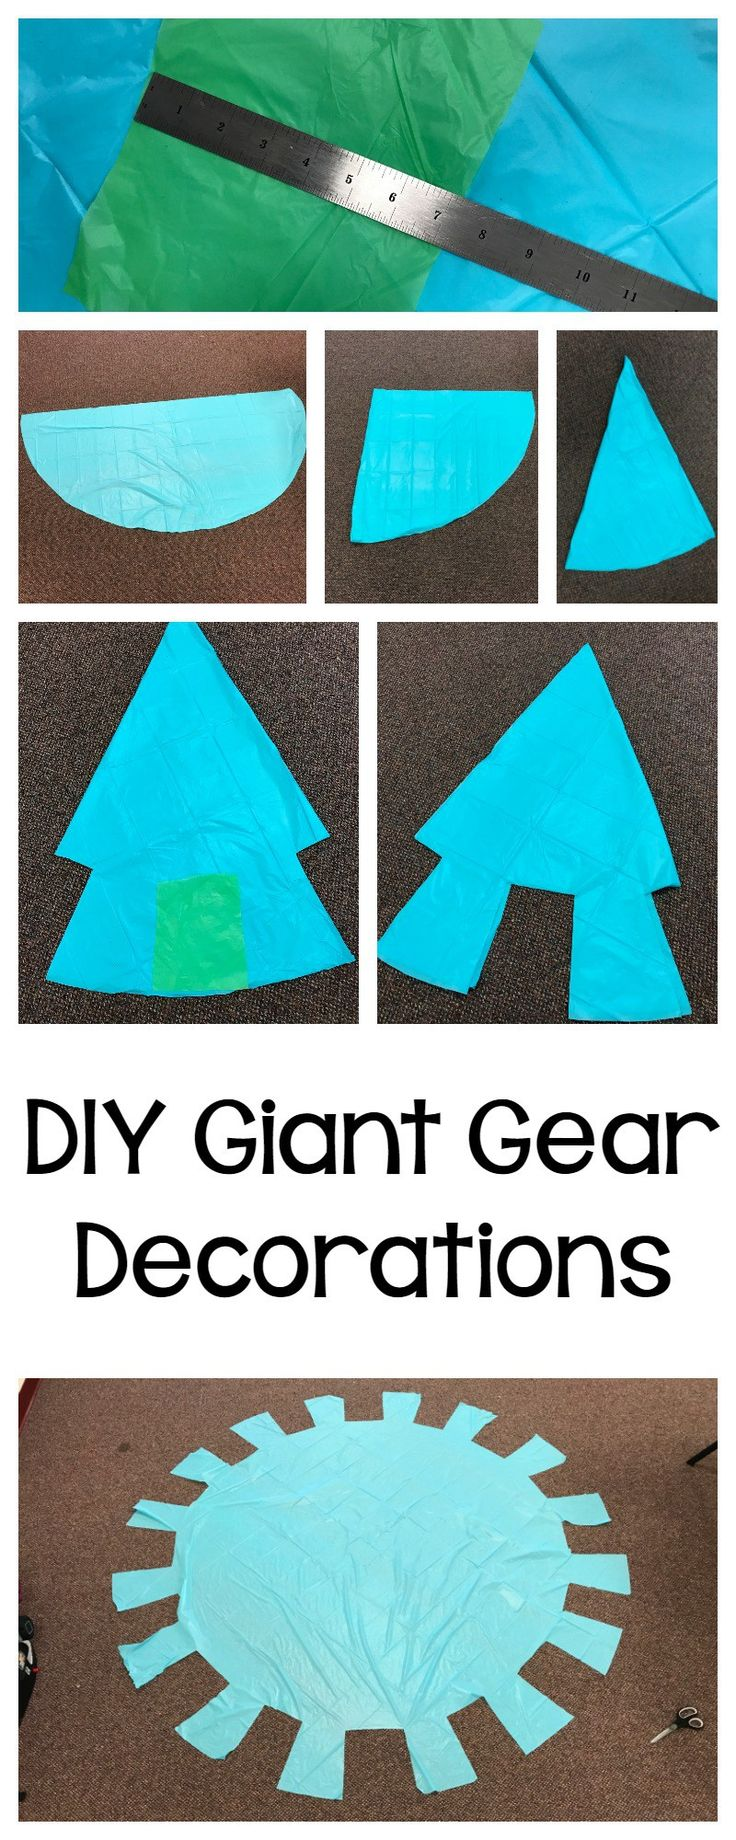 I love decorating for a dollar! My last decorating for a dollar project was the blue paper decorated as blueprints. These giant gear decorations areeven faster and easier… and each one is a whopping SEVEN FOOT gear! This is a great way to decorate large spaces without investing a lot of time or energy. I'm...